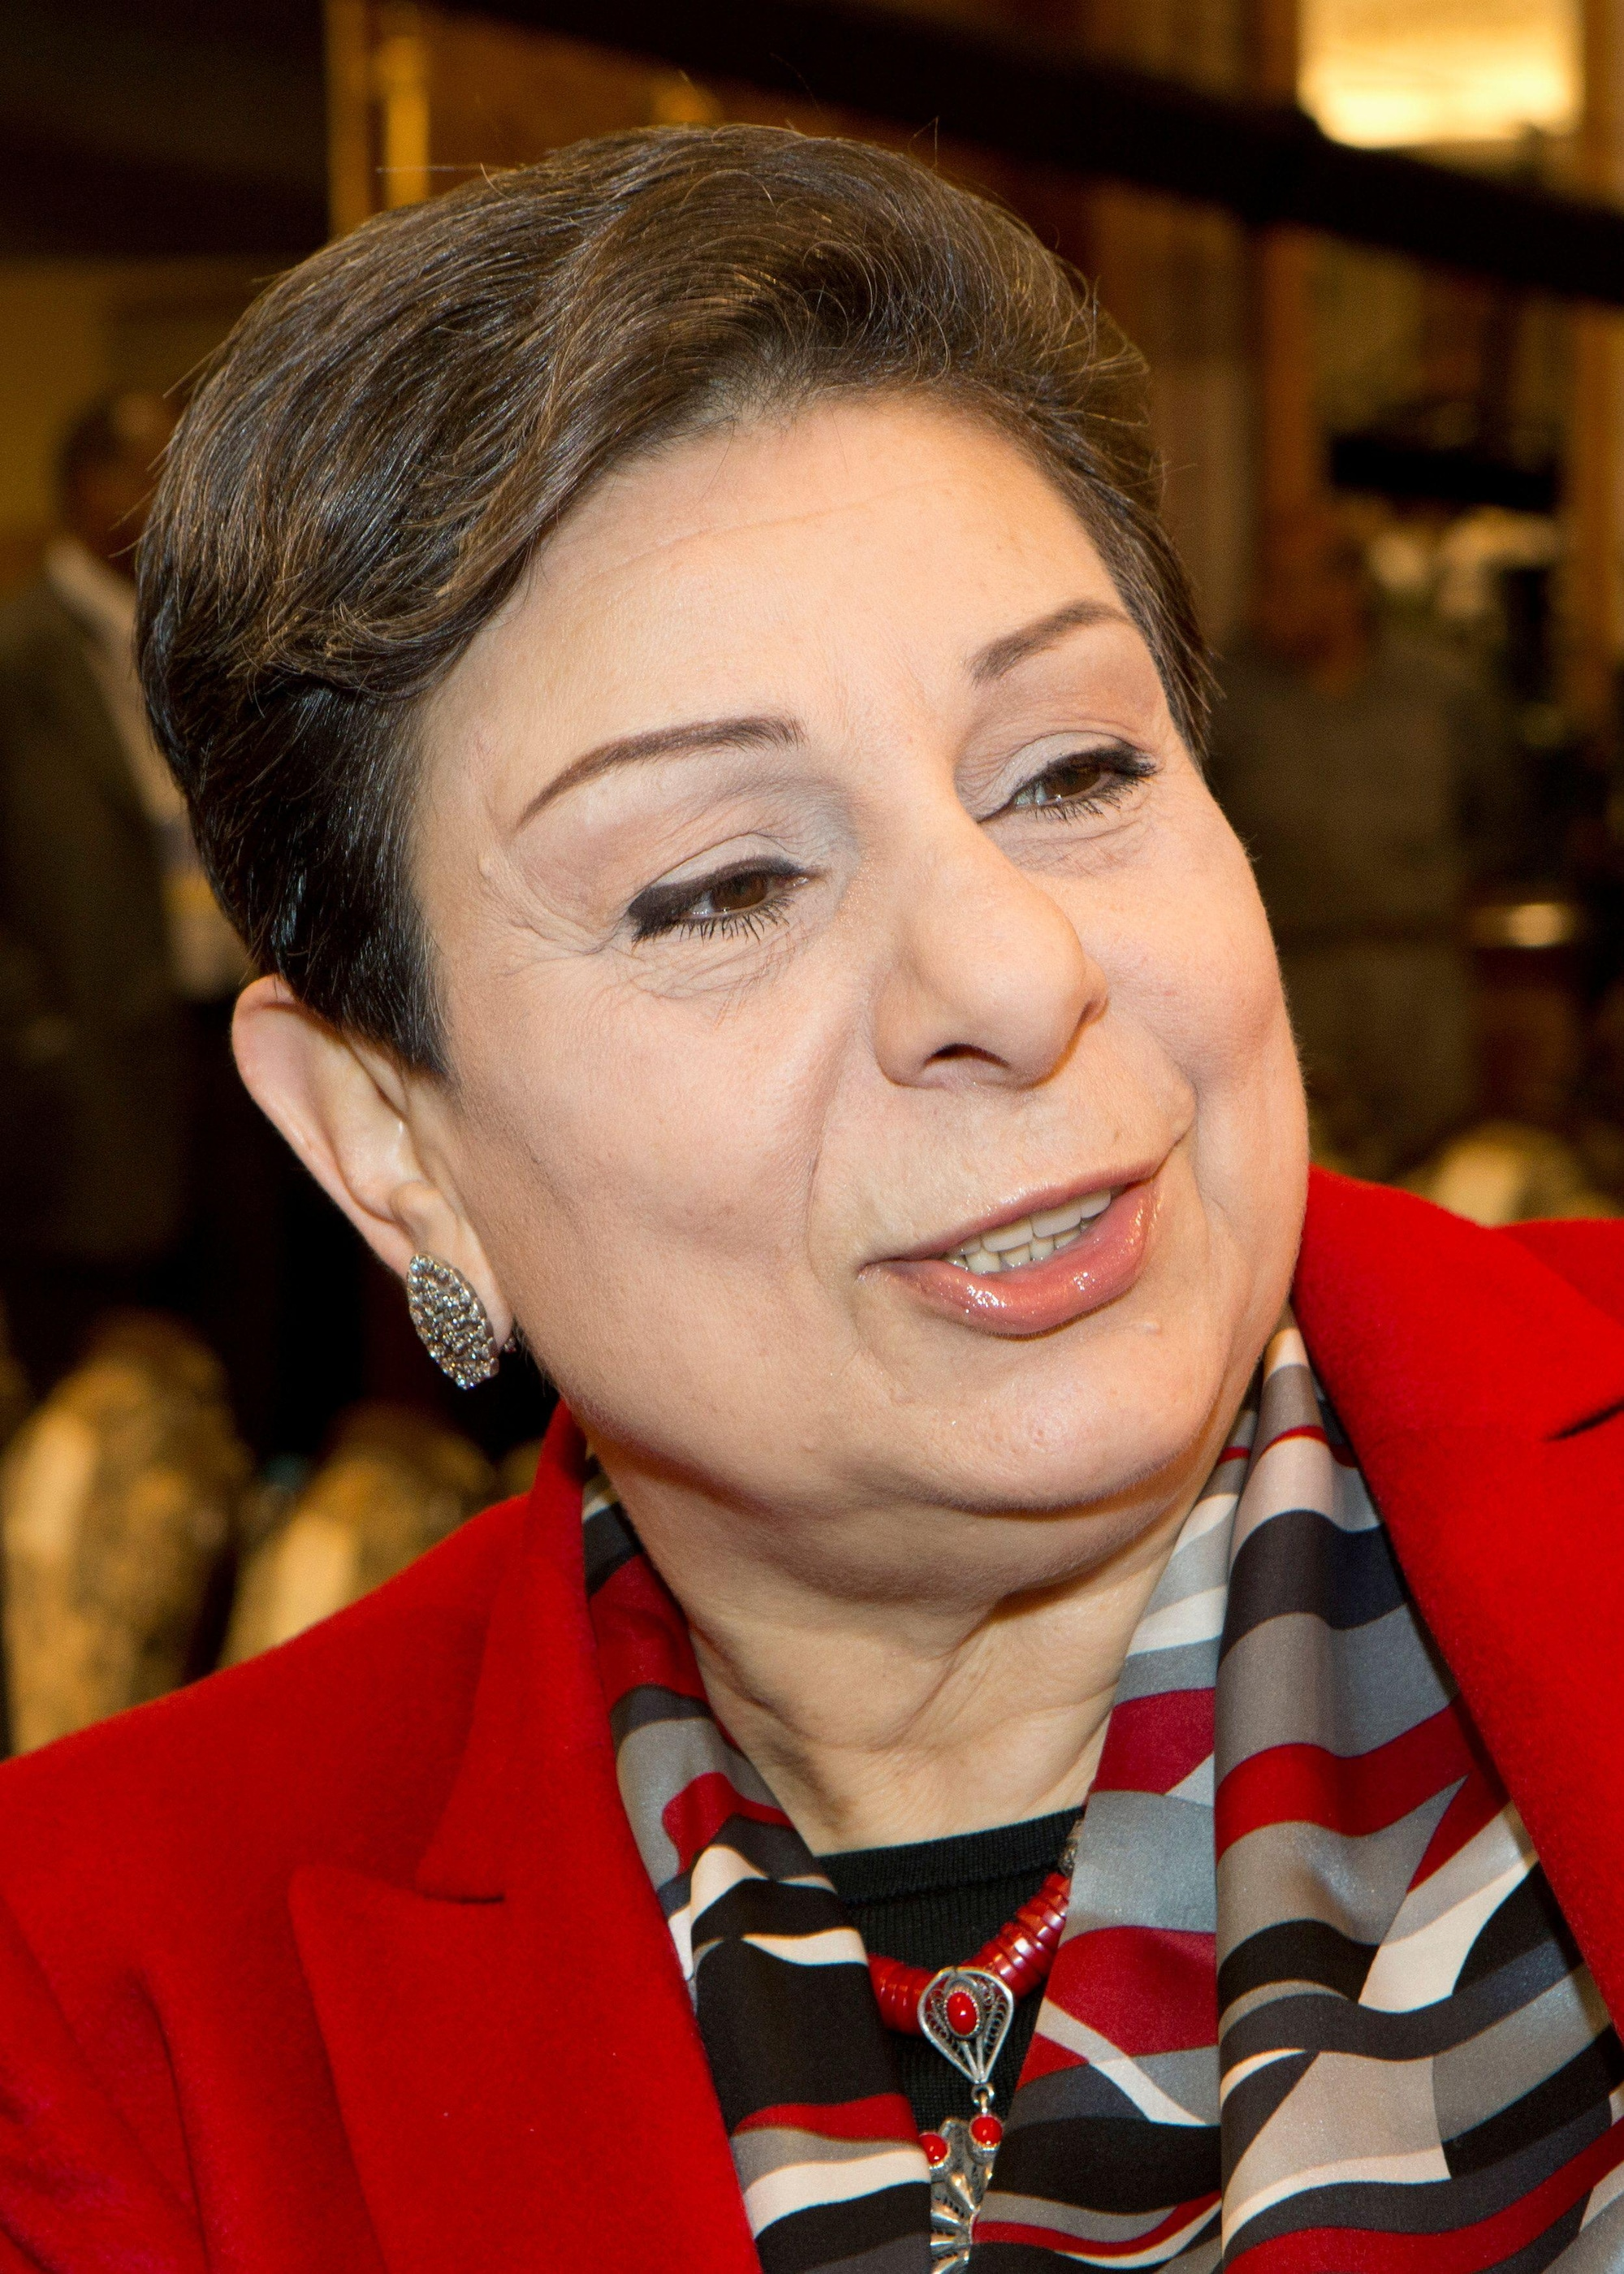 Senior PLO official Ashrawi resigns calls for Palestinian political reforms